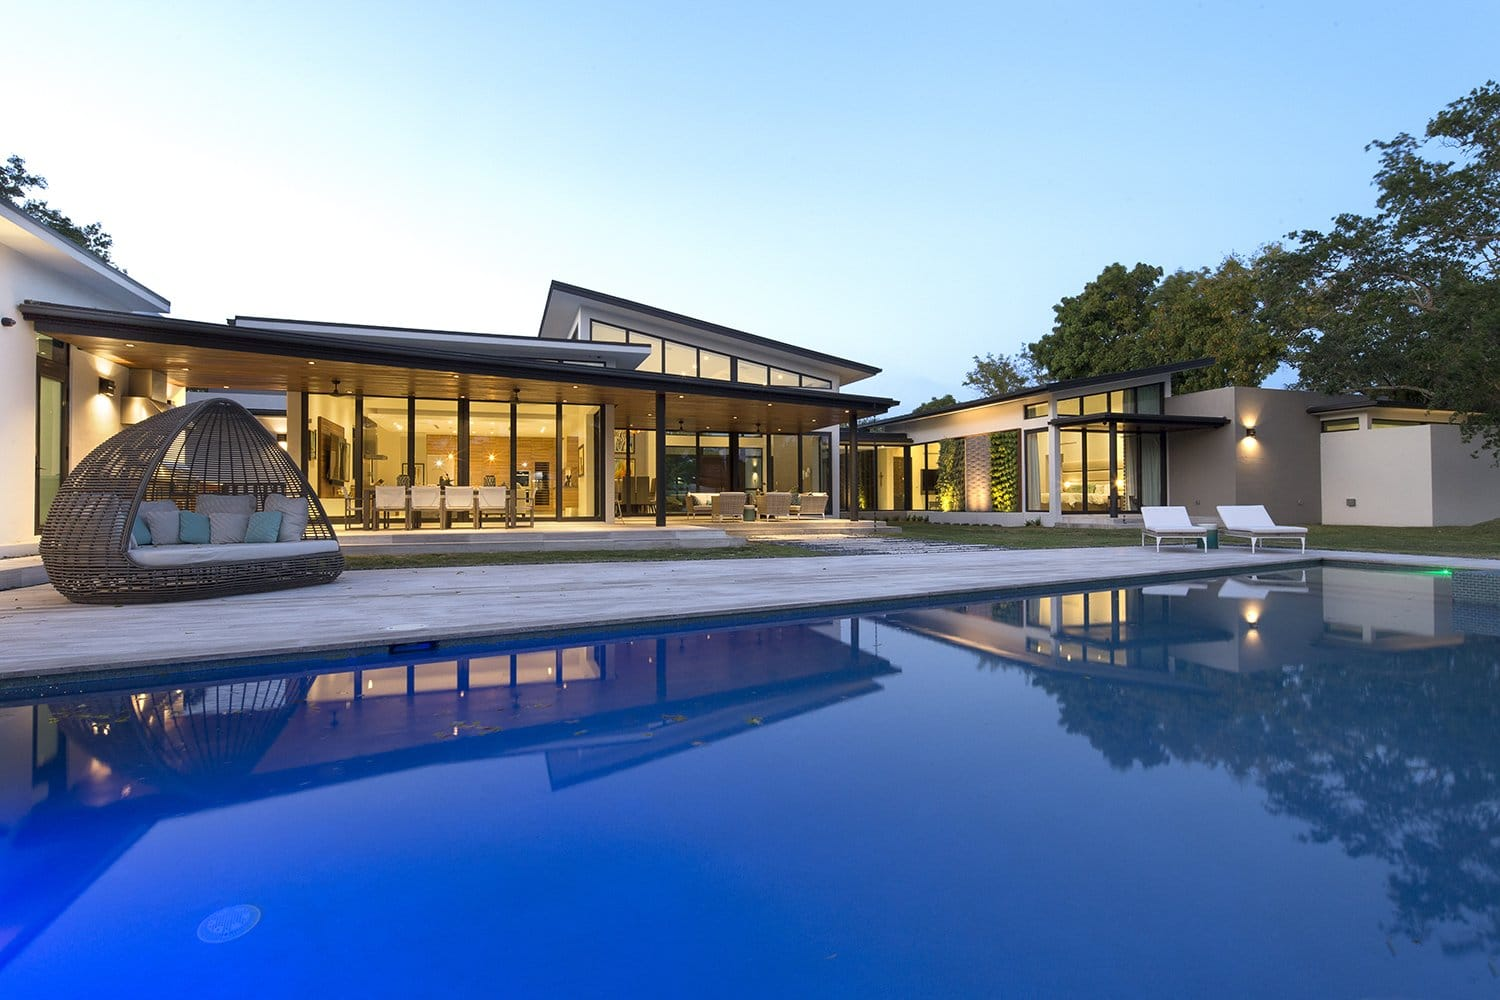 Exterior Architecture project in Pinecrest, Florida